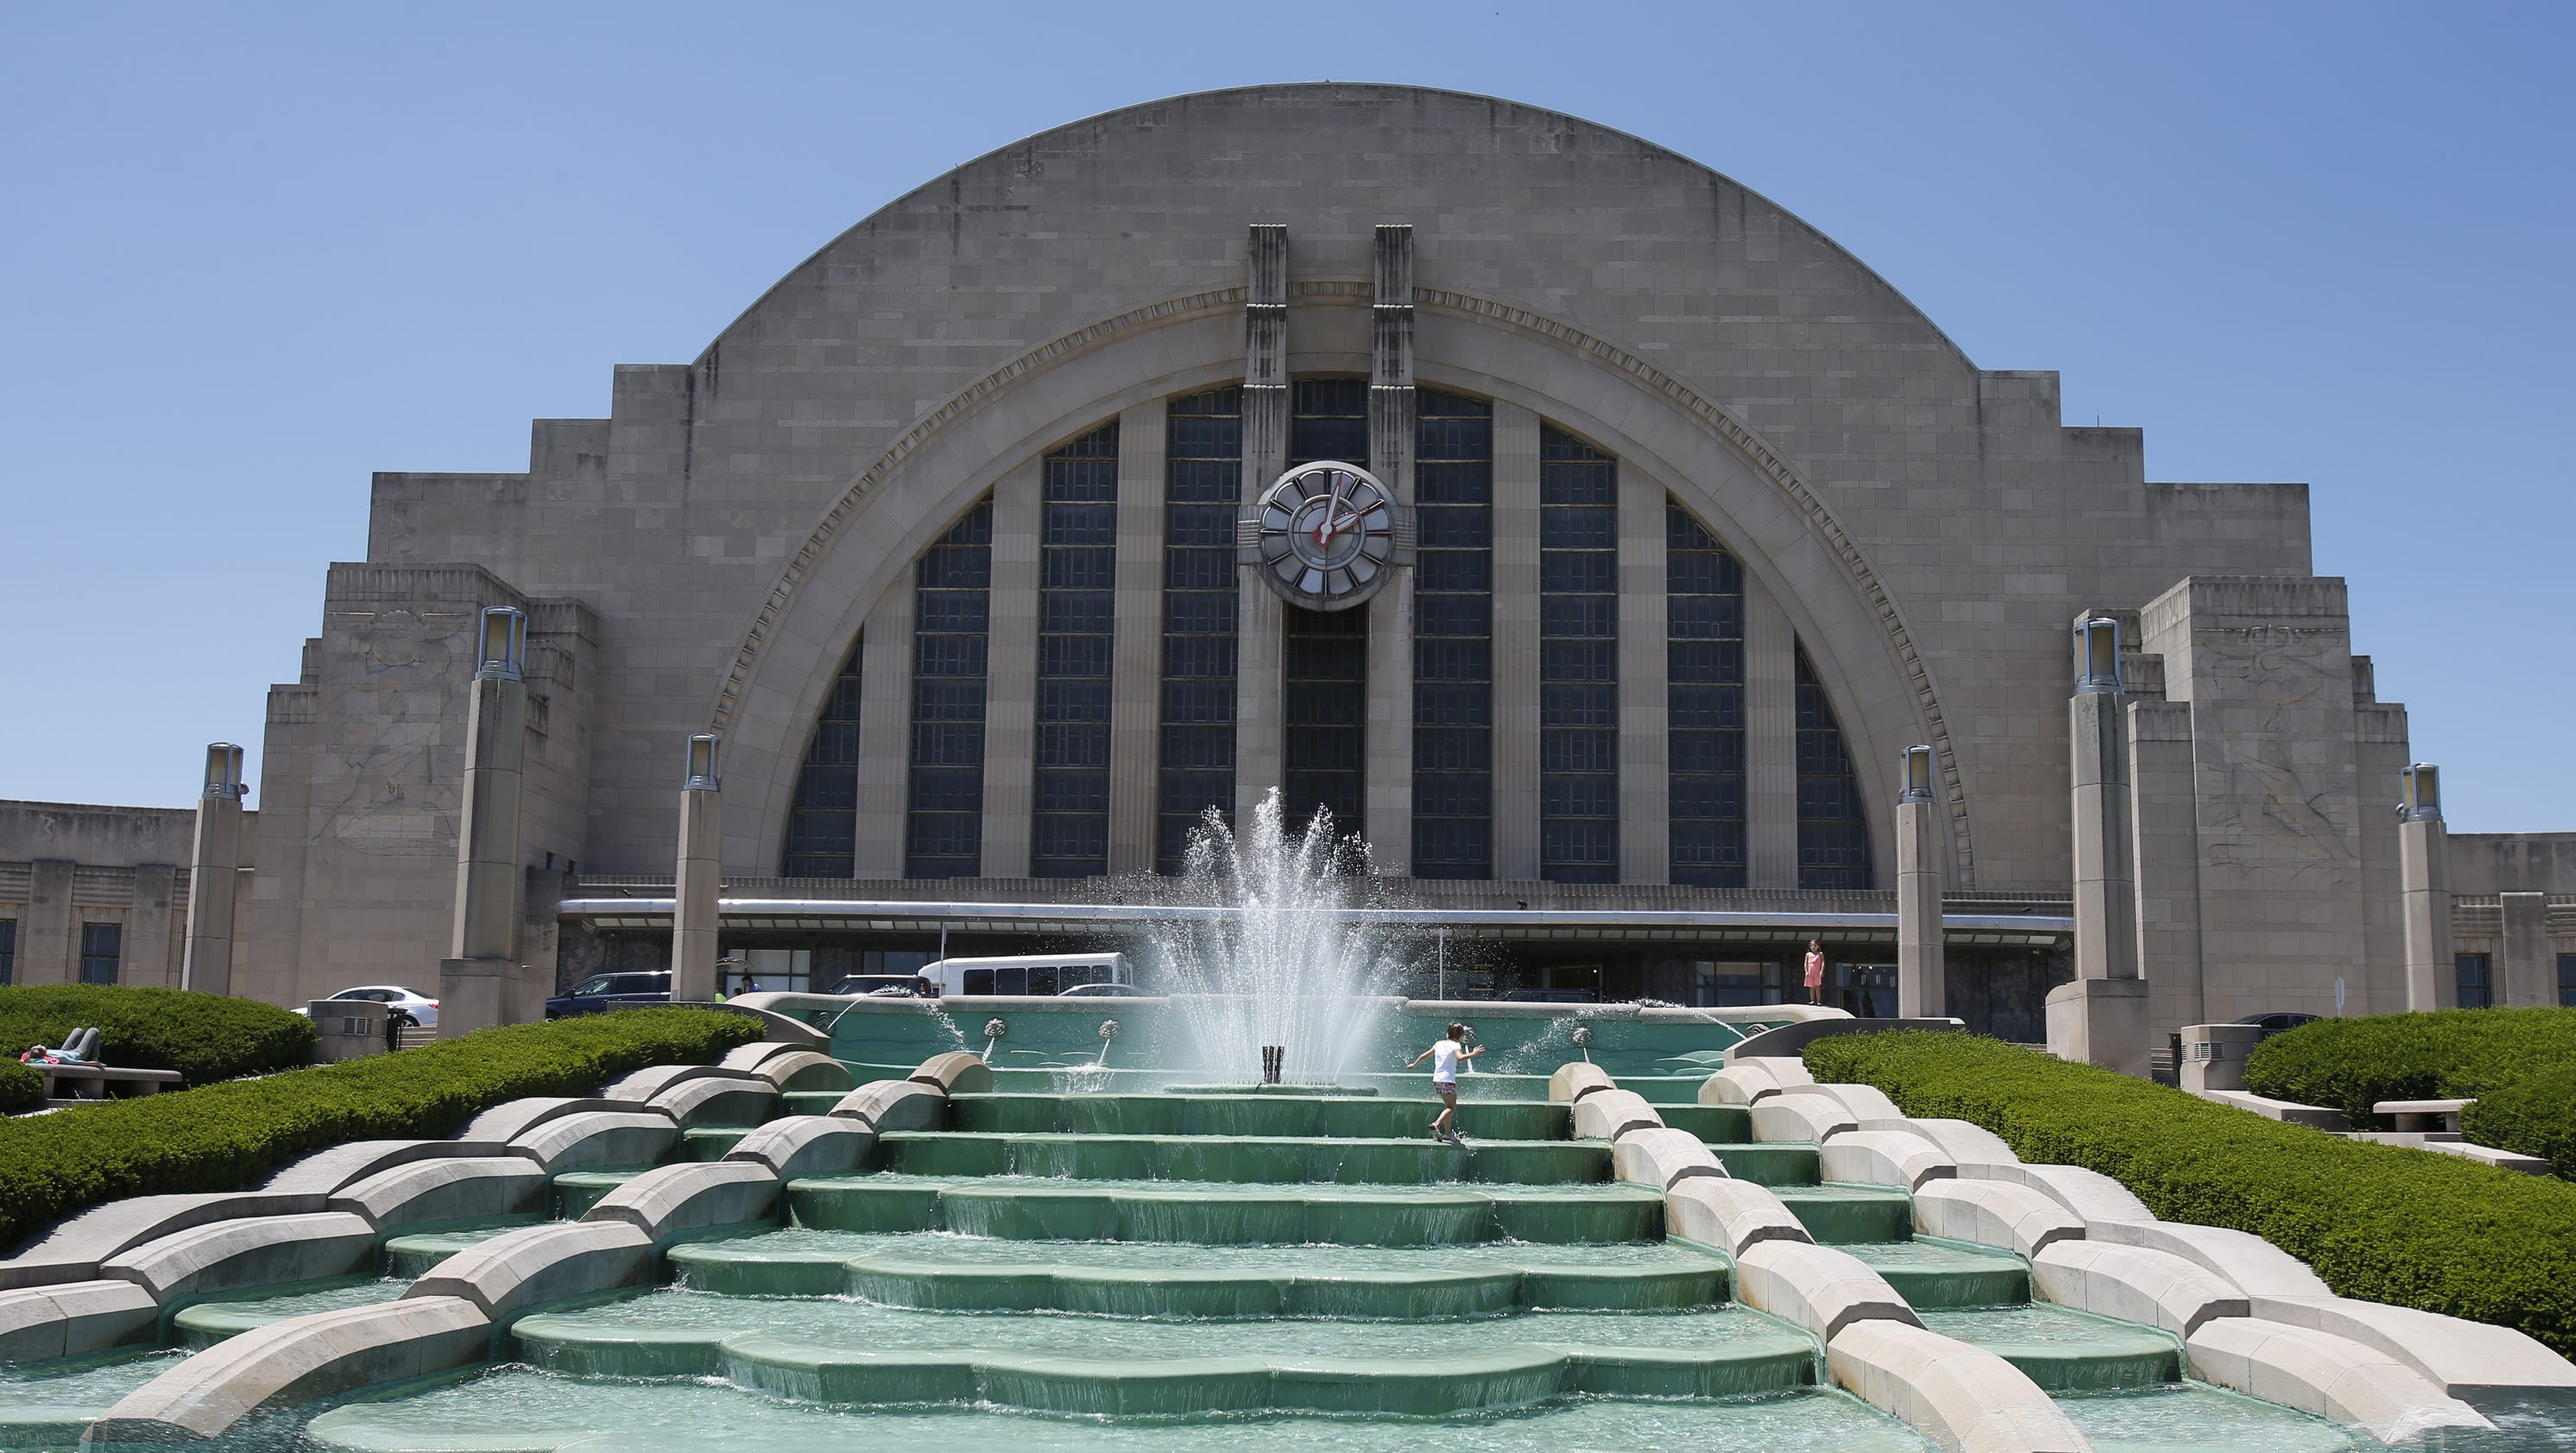 Who Owns Music Hall Union Terminal